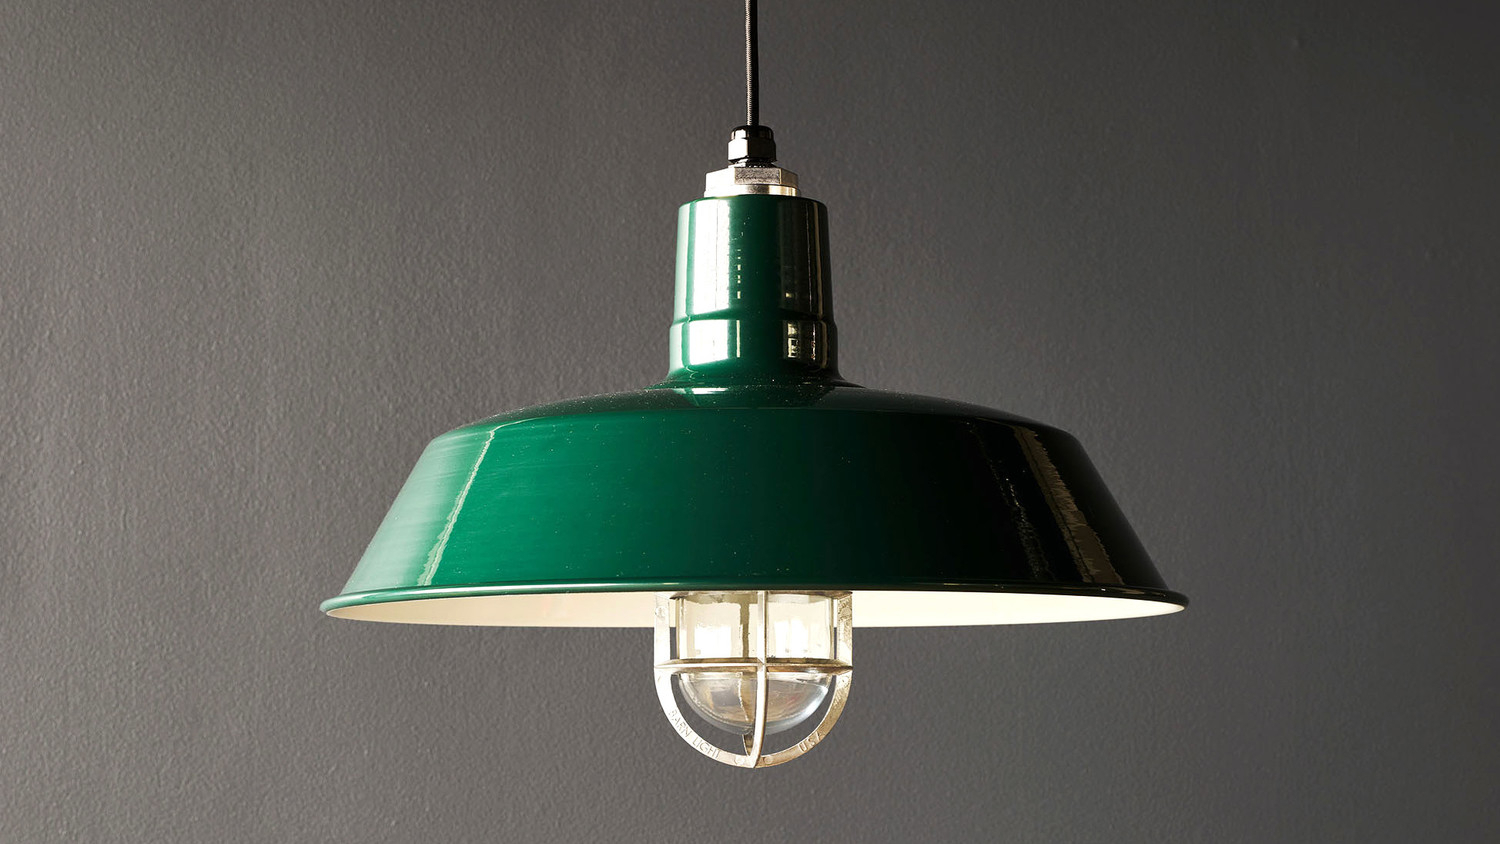 Snag These Sales! 43% Off Andover Mills Finnick 1 Light With Finnick 1 Light Geometric Pendants (View 14 of 30)